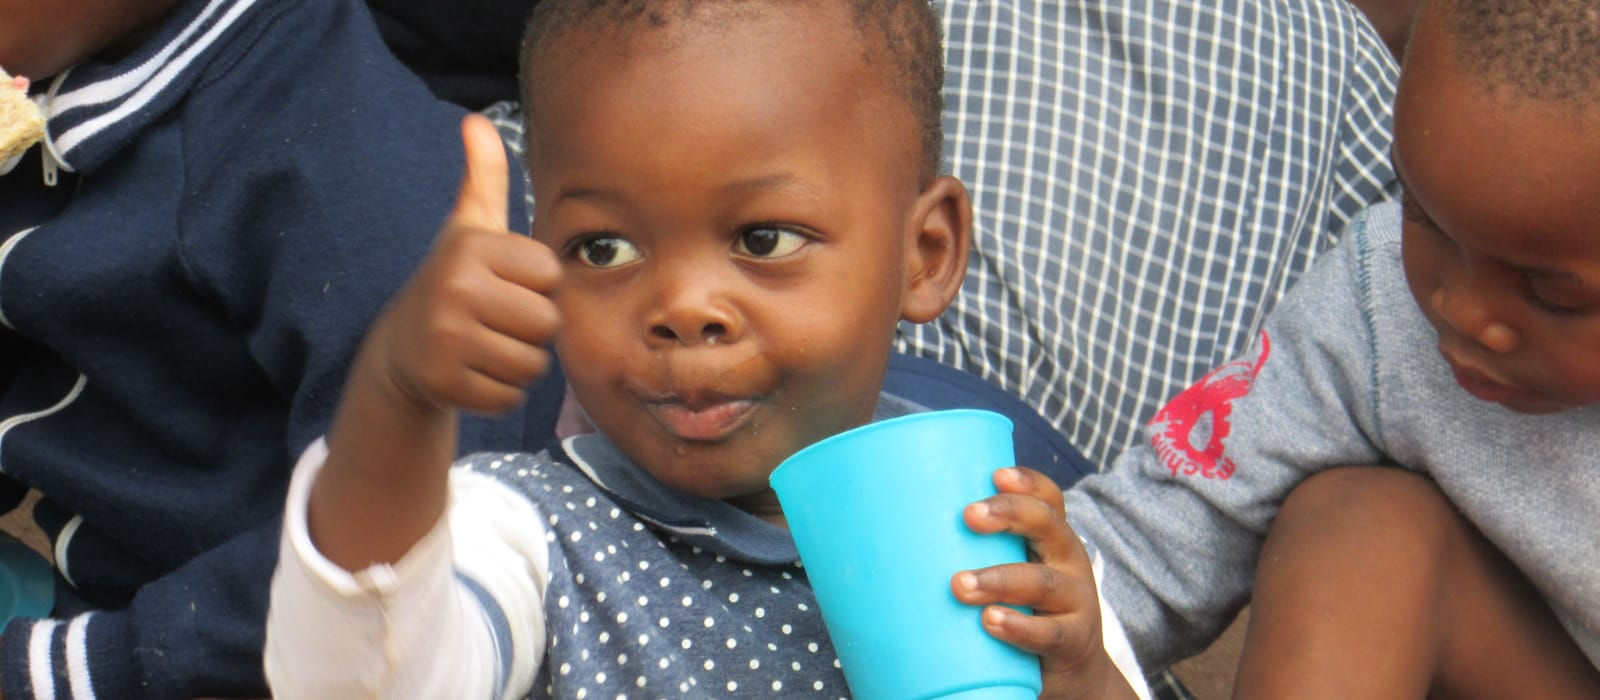 Child with a thumbs up, drinking from a blue cup